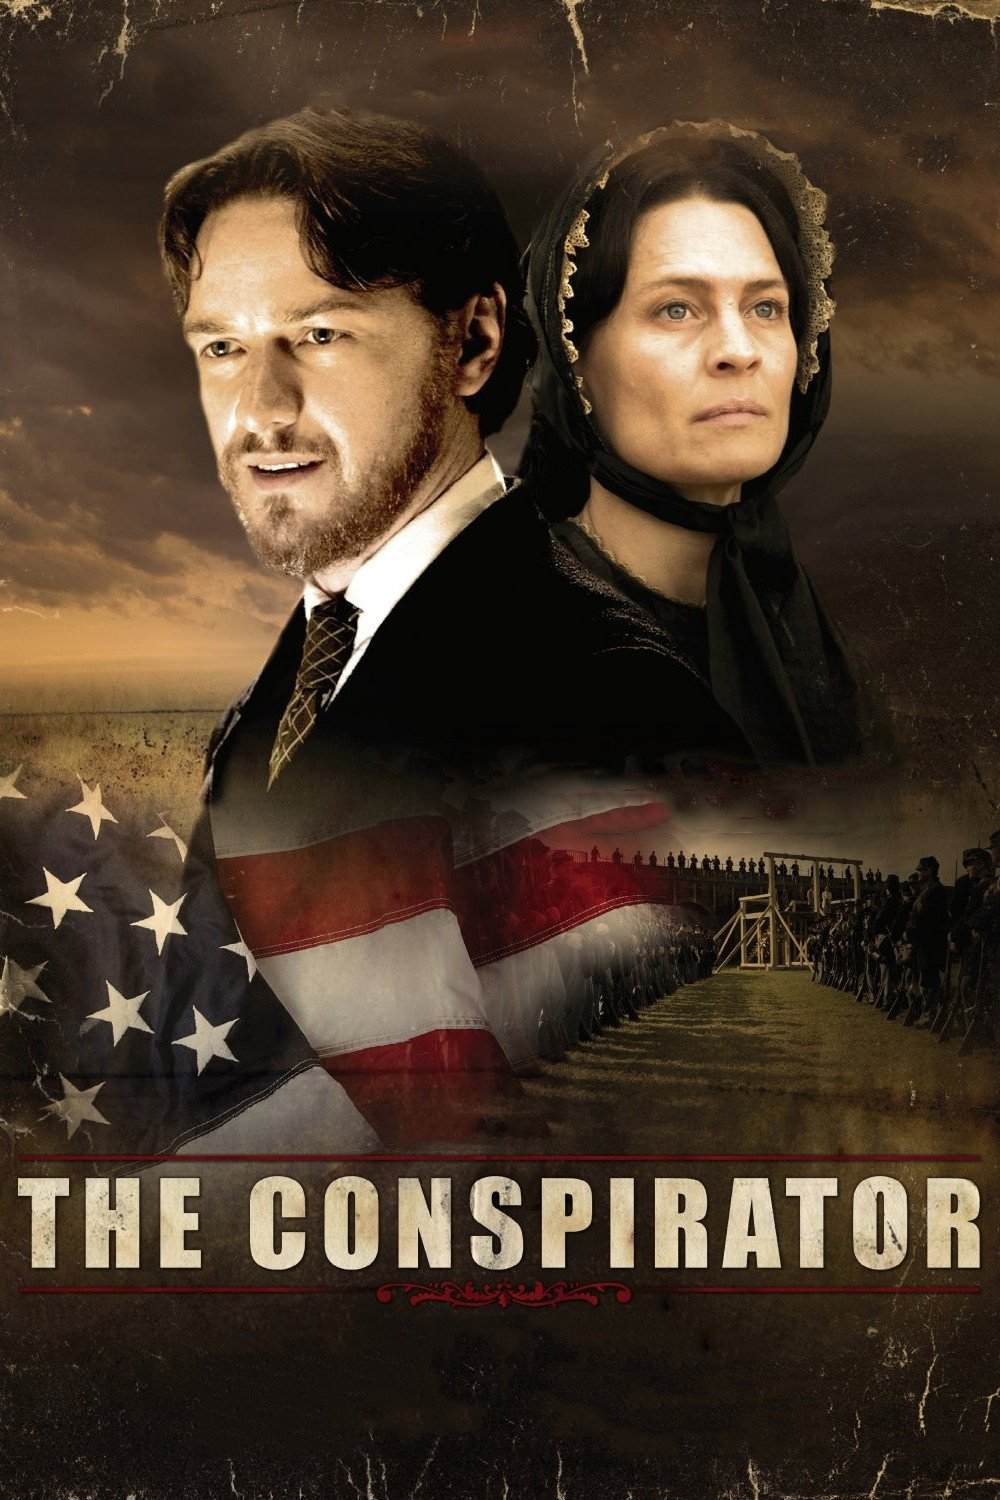 The Conspirator, 2010